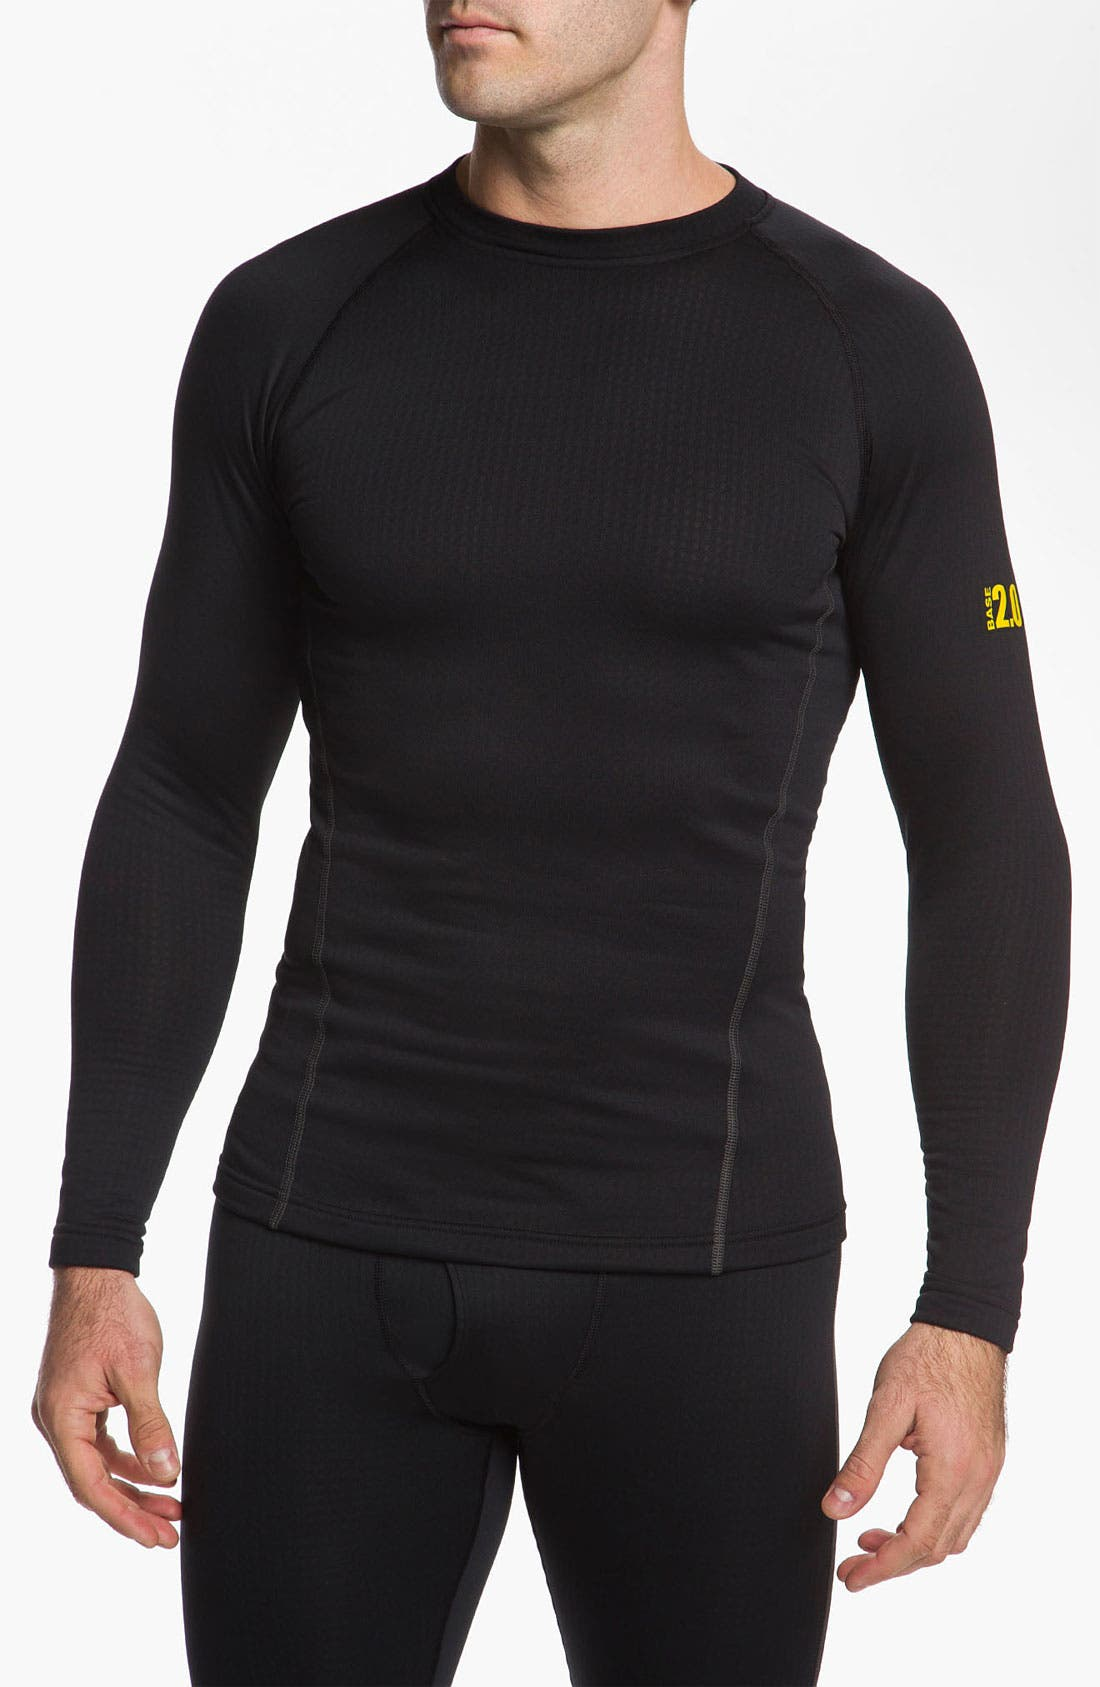 Alternate Image 1 Selected - Under Armour 'Base 2.0' Fitted Crewneck Top (Online Only)